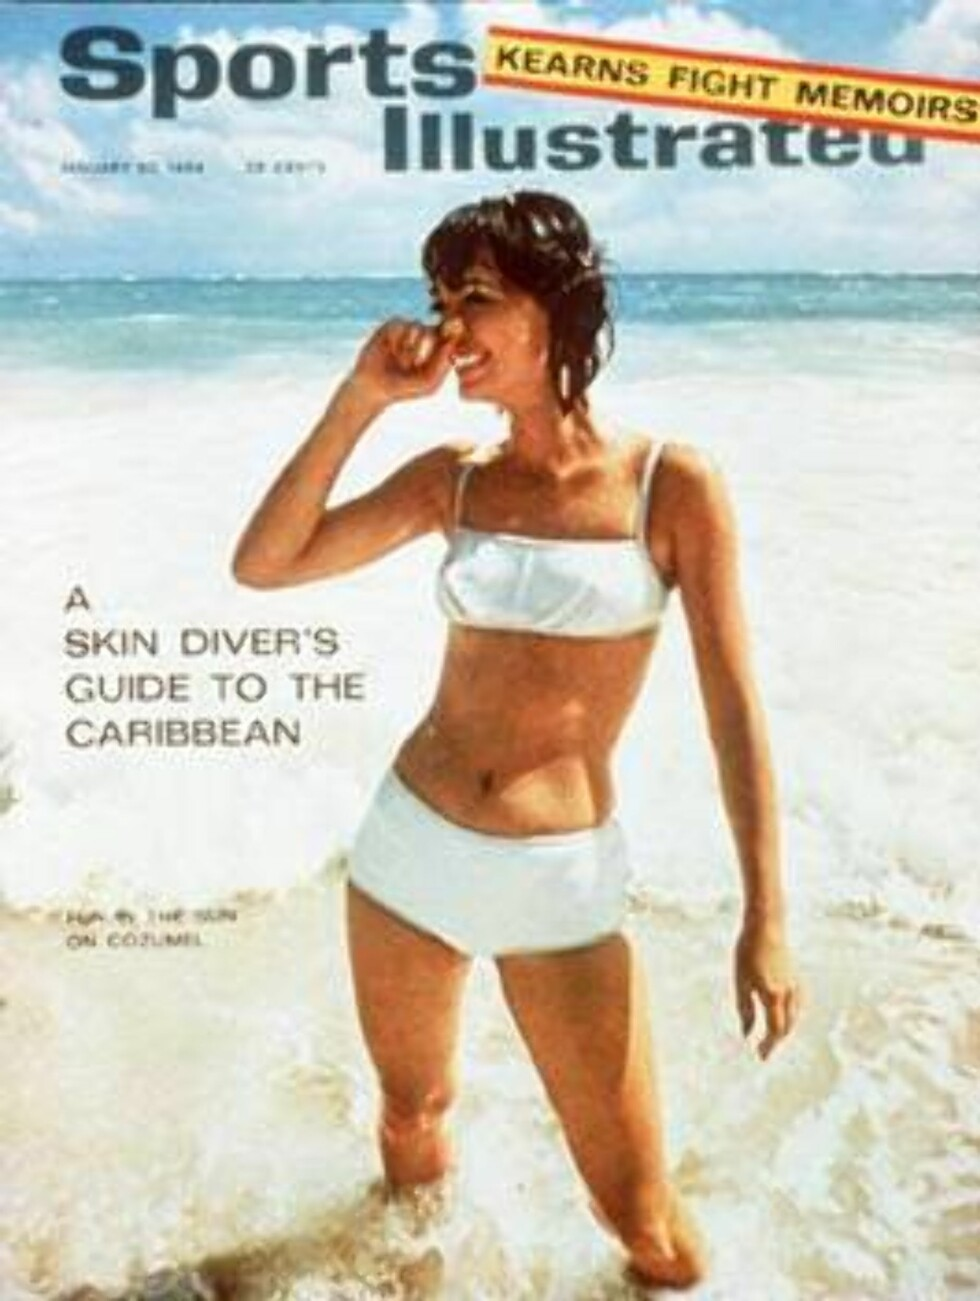 Women in the Surf at Cozumel-Sheared Leather Swimsuit January 20, 1964 X 9666 credit:  J. Frederick Smith - assign Foto: Sports Illustrated